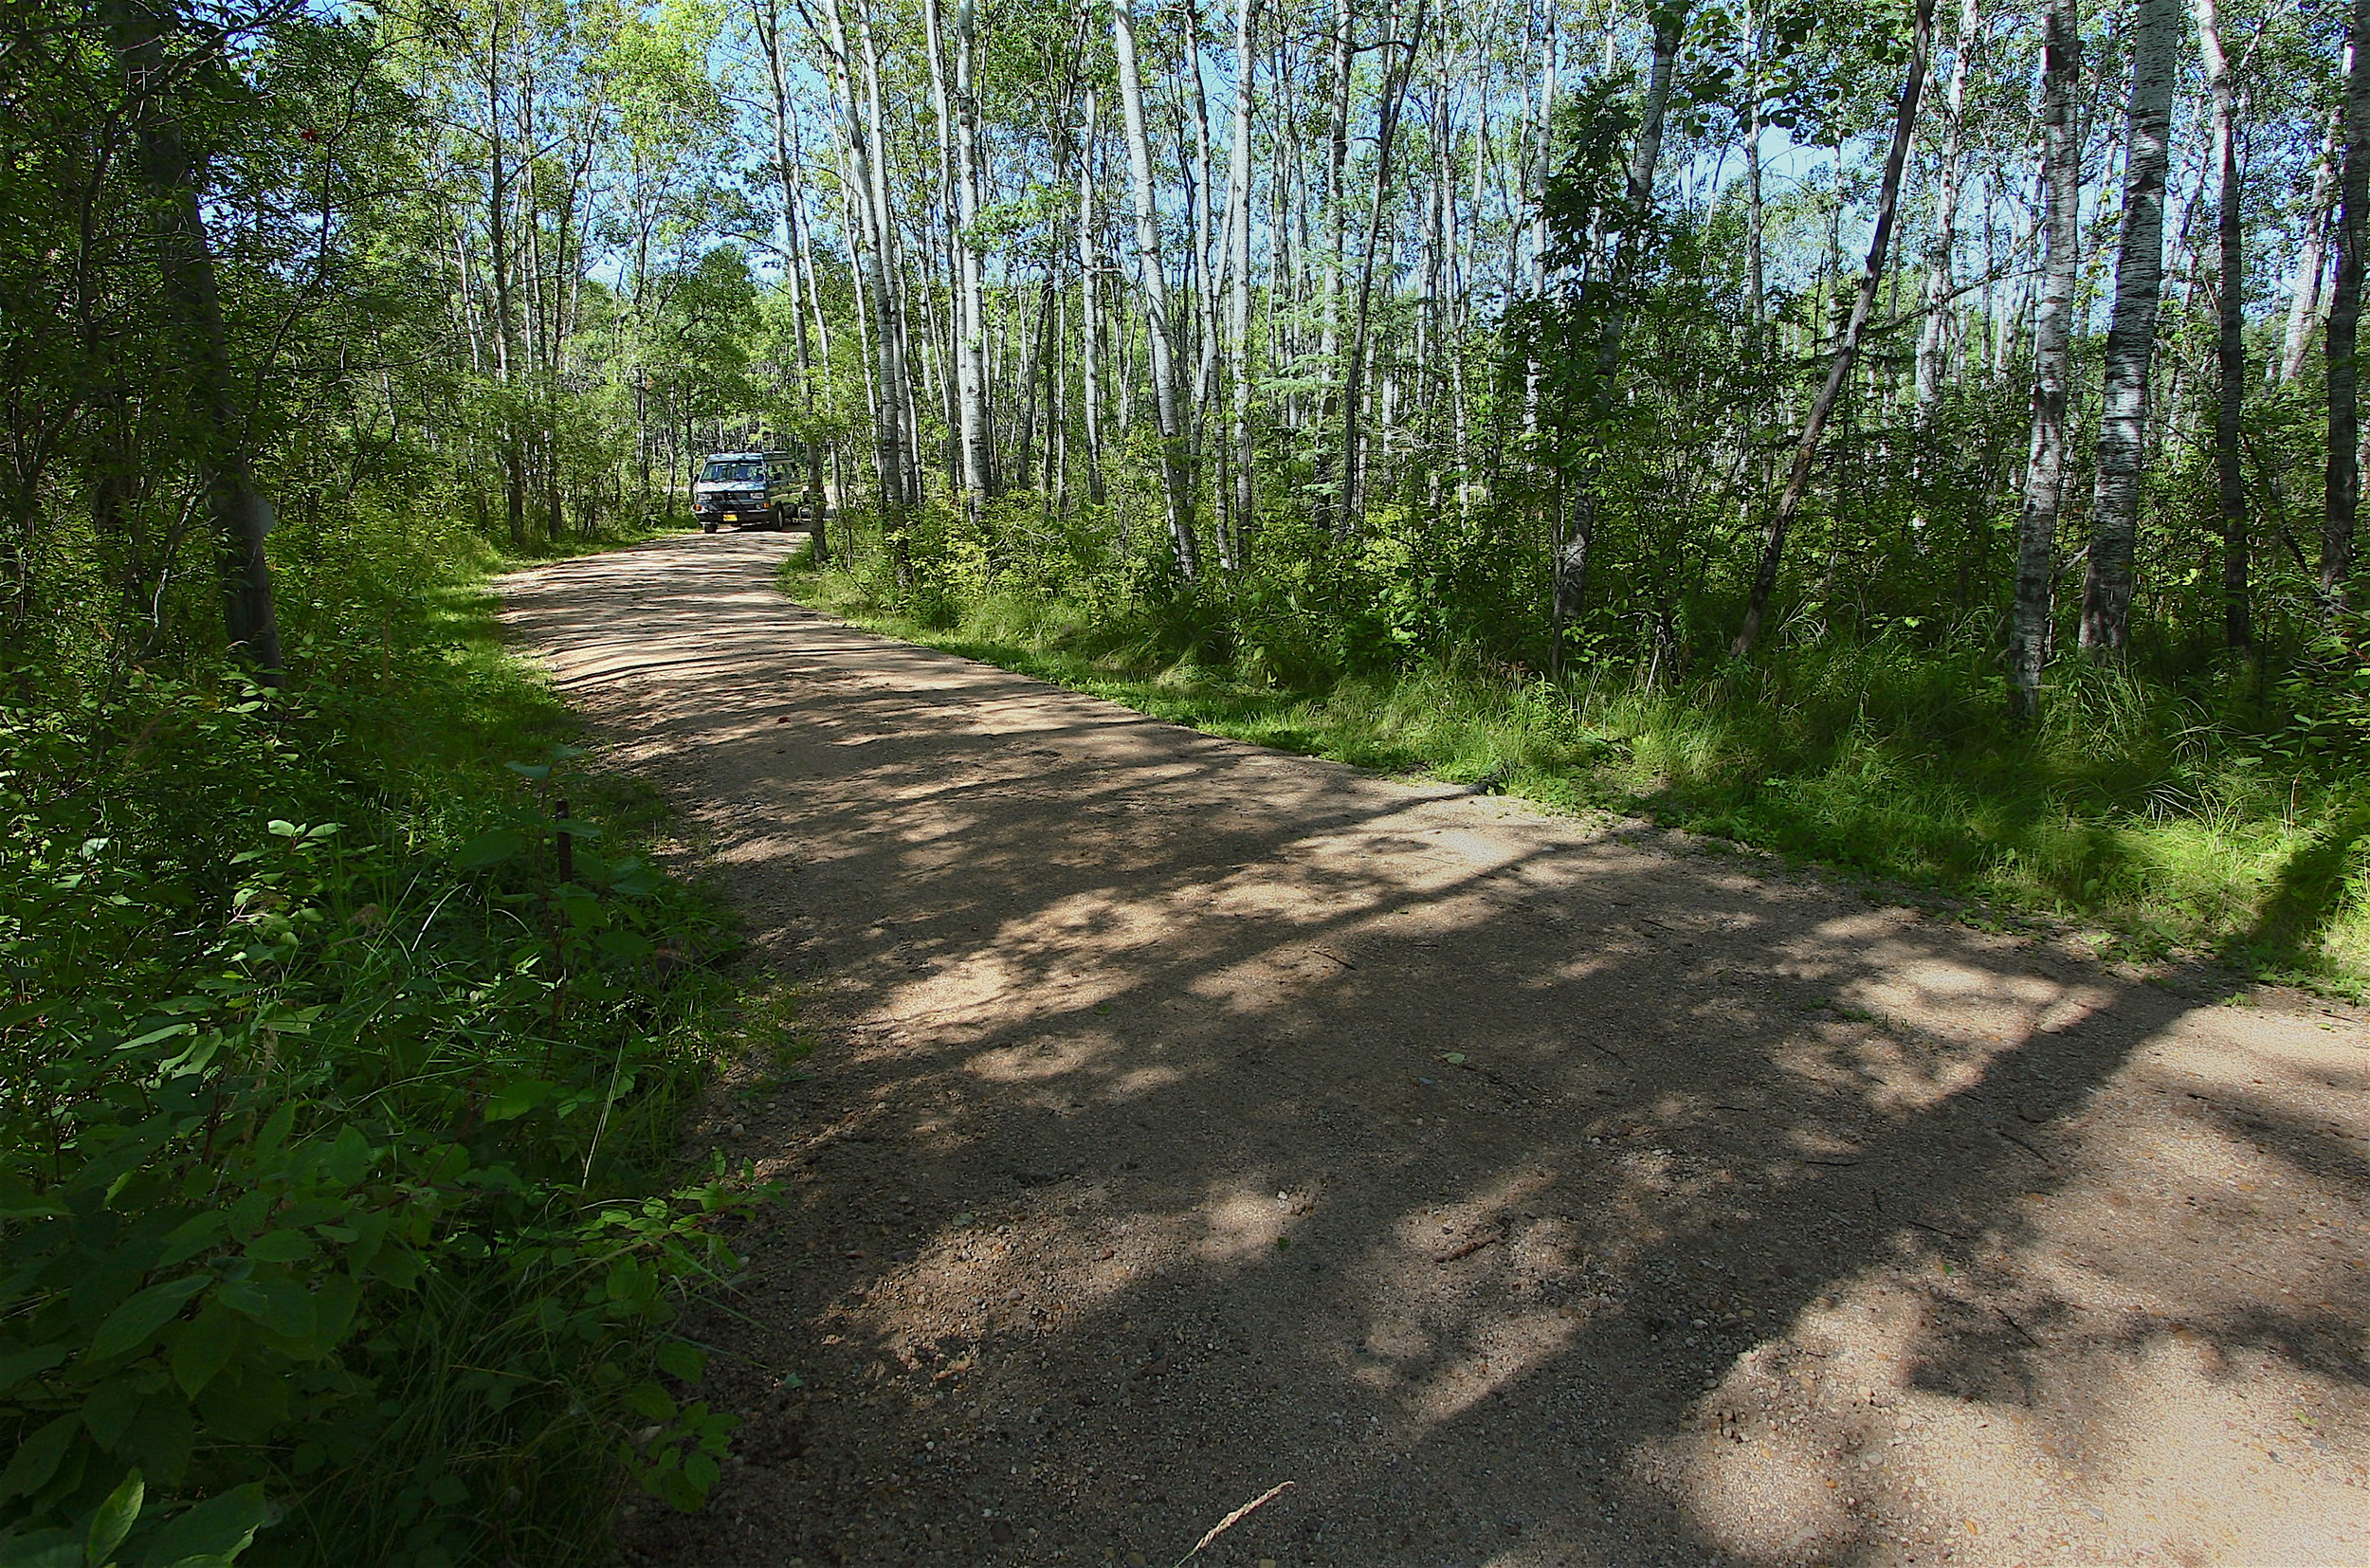 The driveway (approximately 50 meters in length) as seen from the small  roundabout...